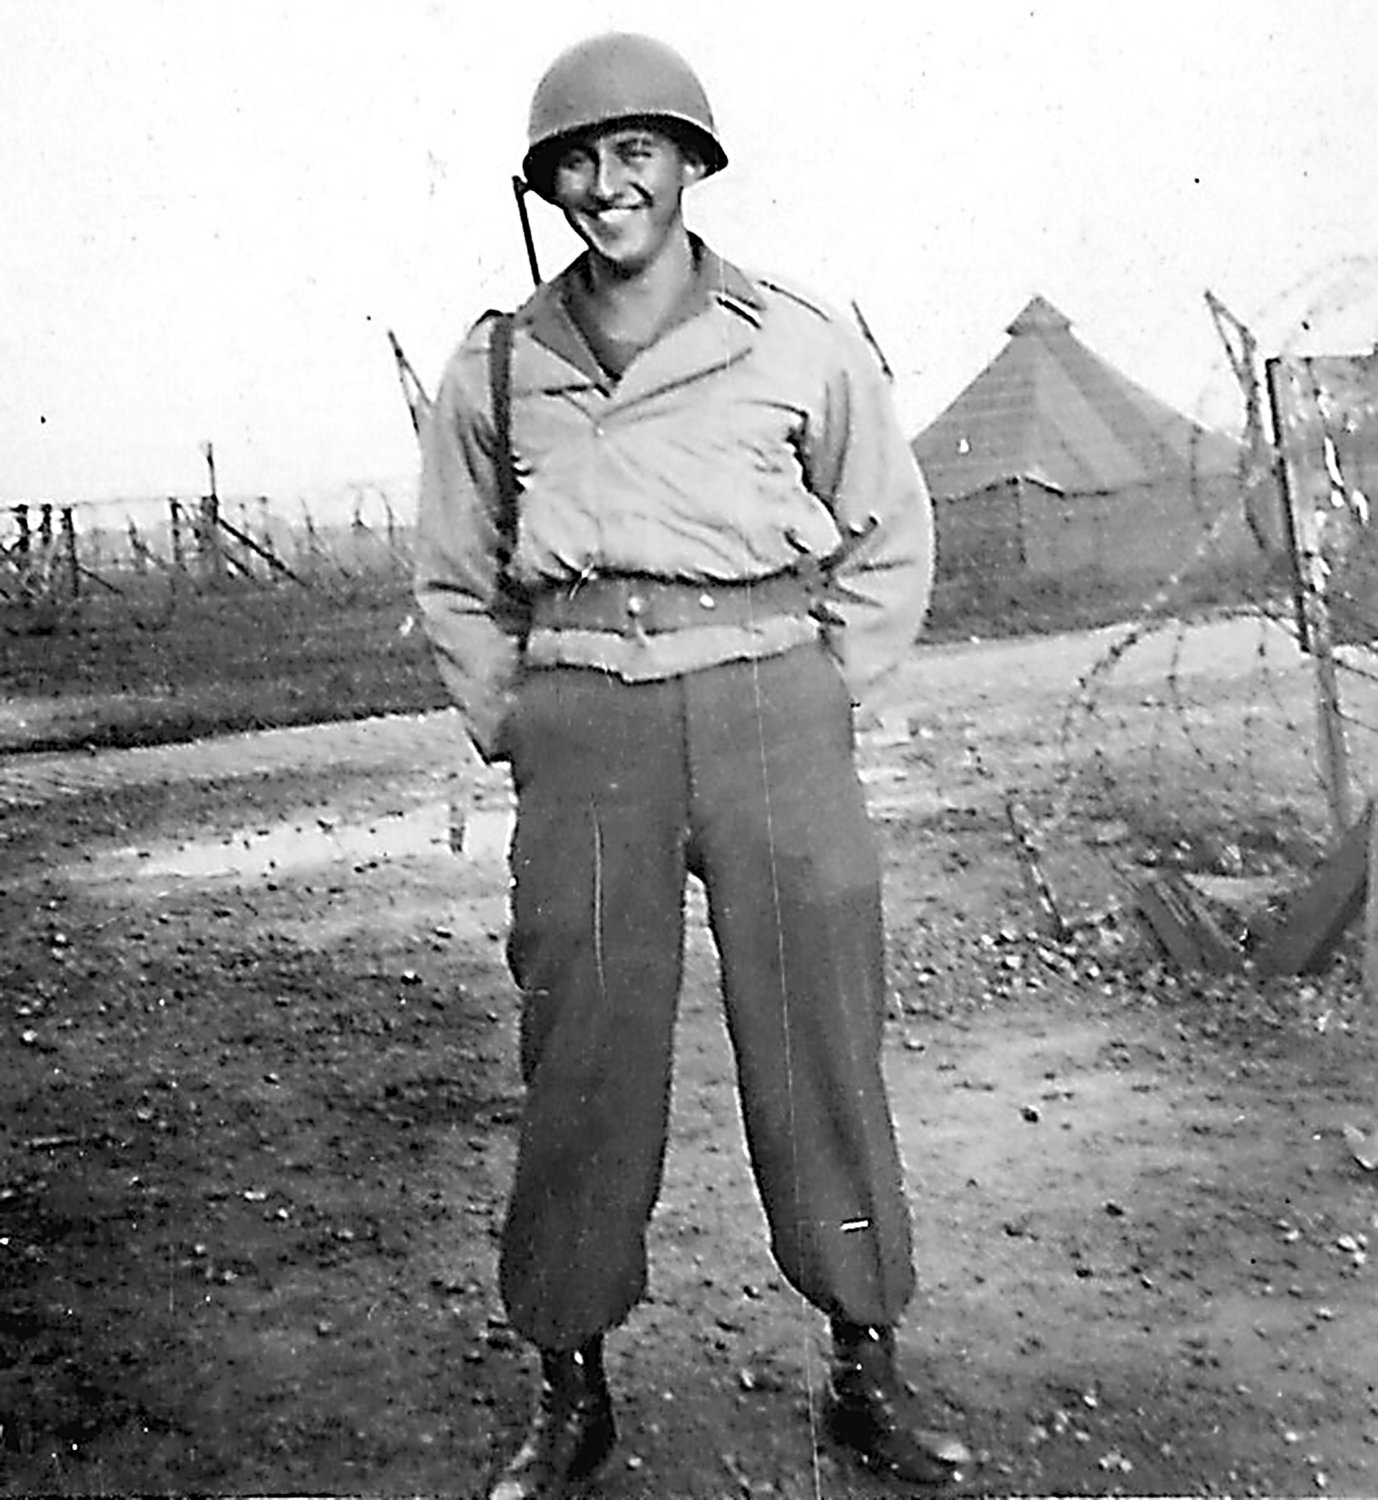 Mark Paradise poses for a picture sometime after D-Day while serving in Europe.